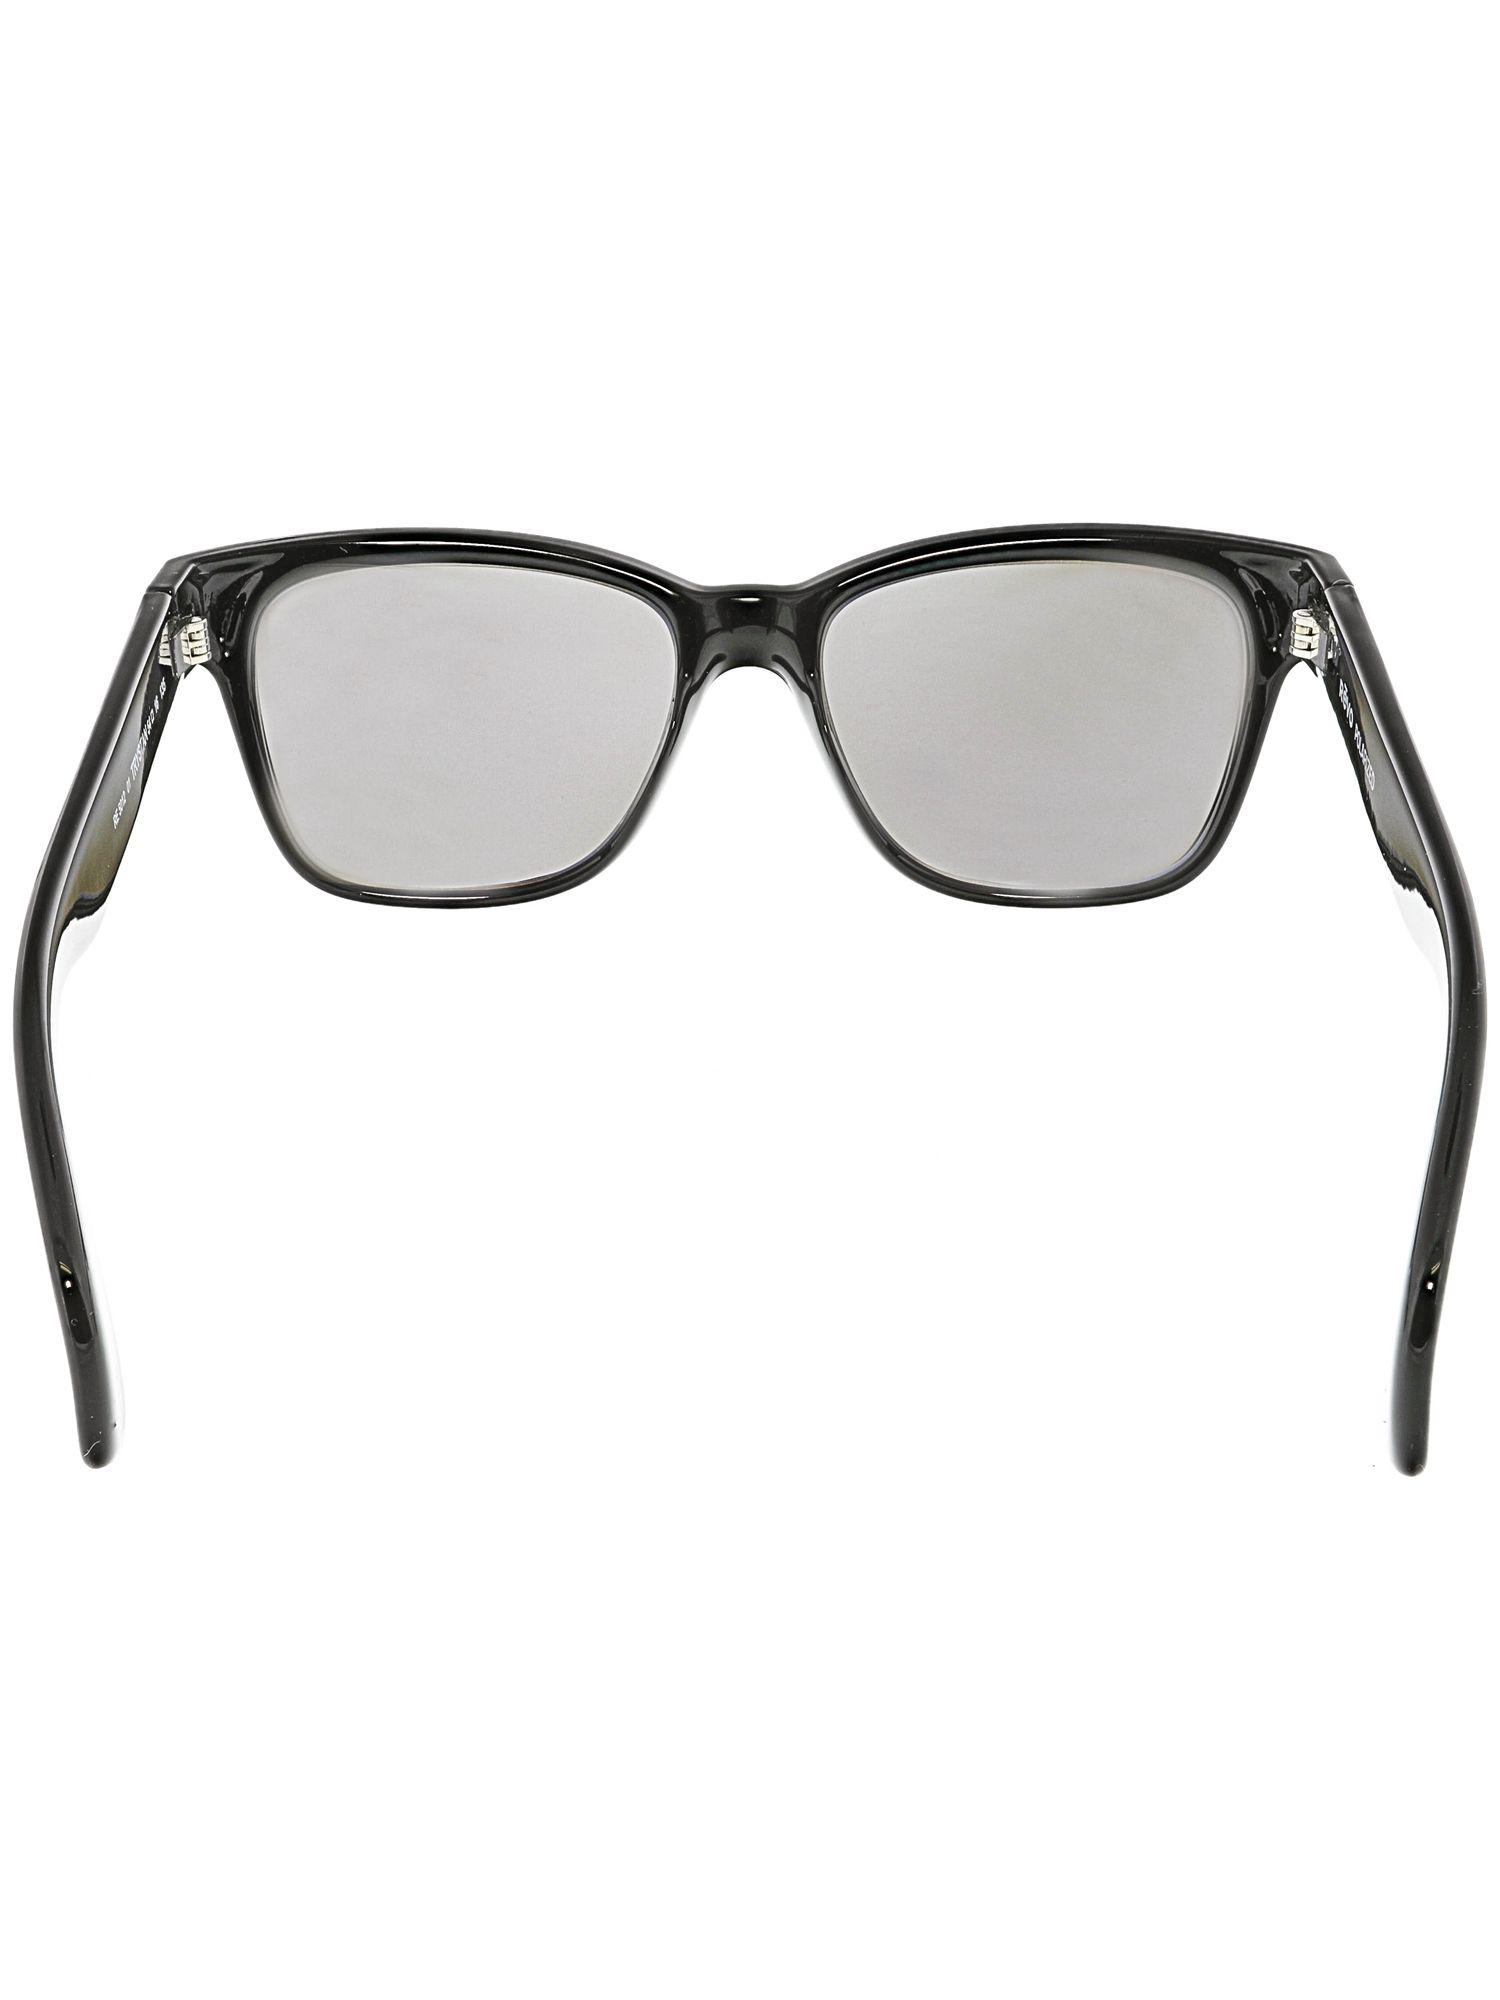 65abf18eea3 Revo - Men s Polarized Trystan Re-5012-01-gy Black Rectangle Sunglasses  for. View fullscreen